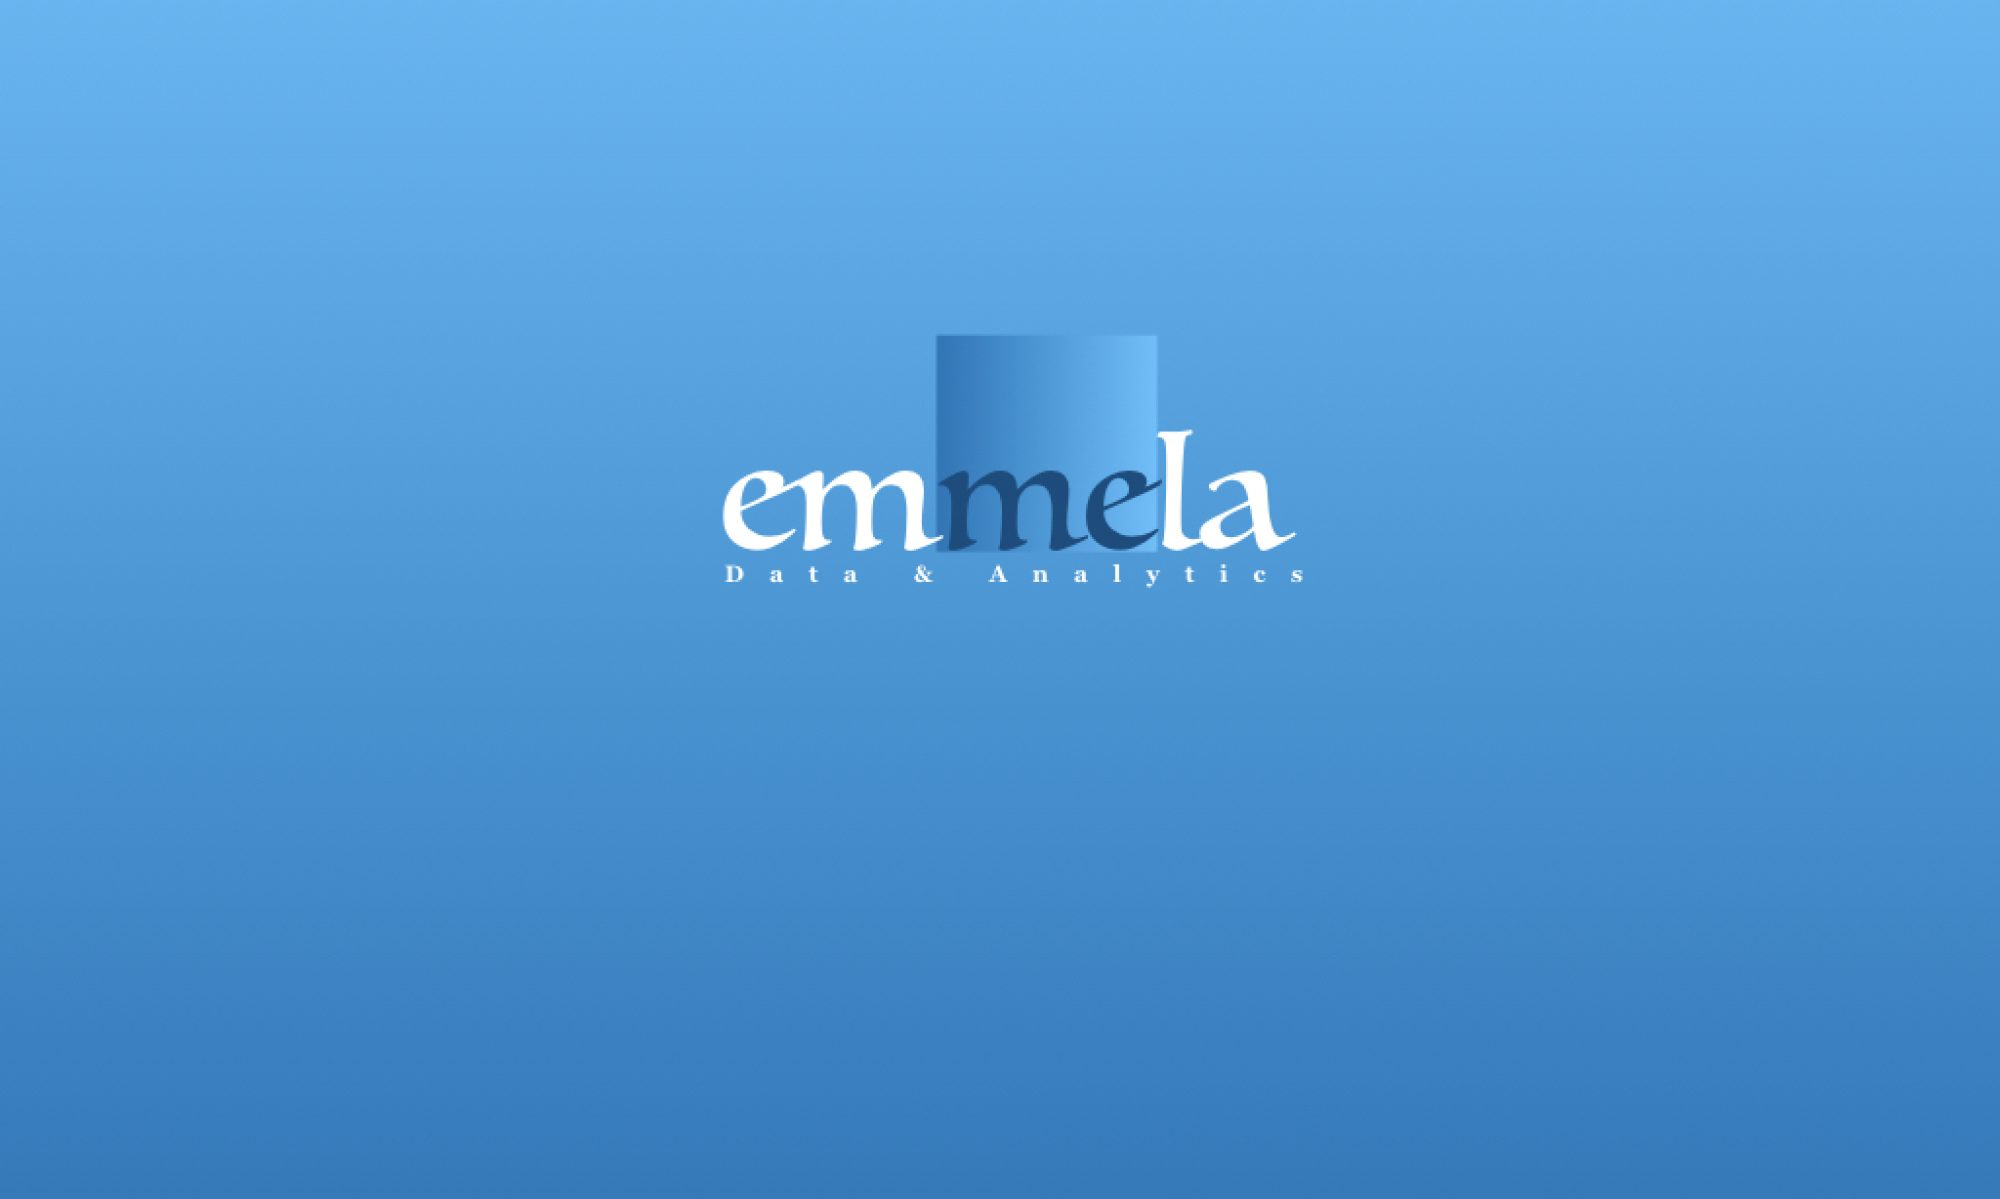 EMMELA Data & Analytics